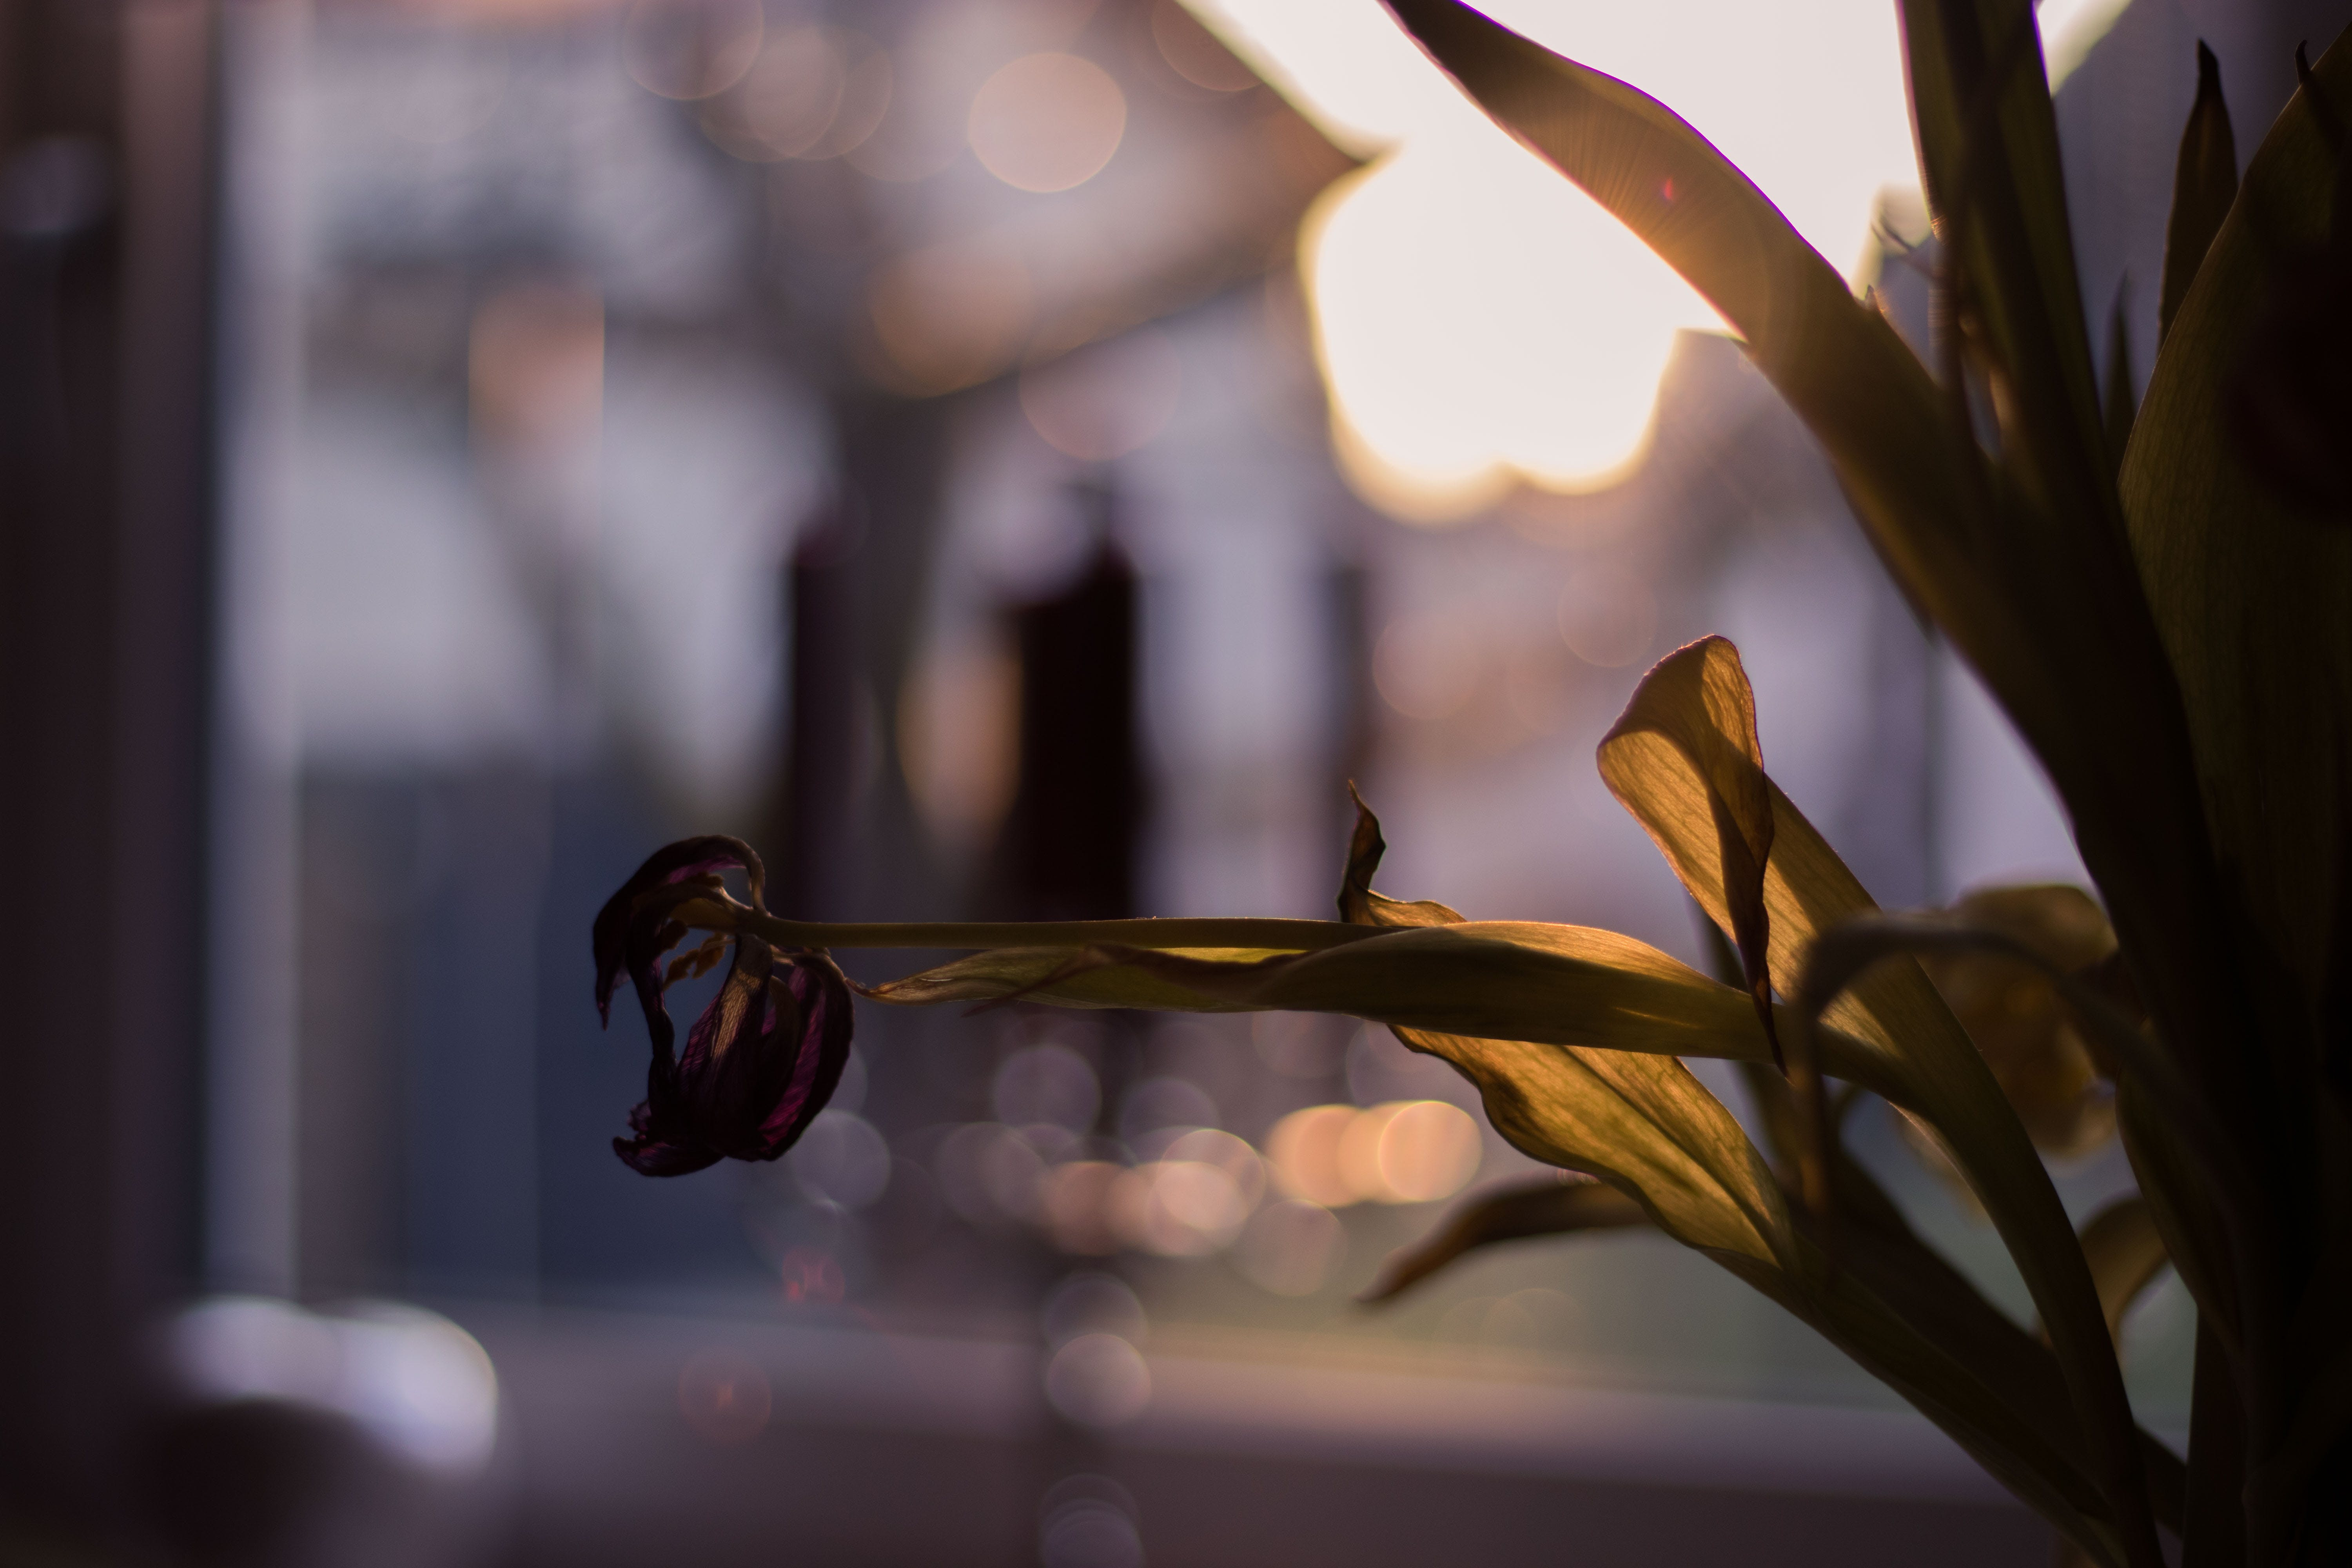 Free stock photo of blurry background, evening sun, flower, Seared